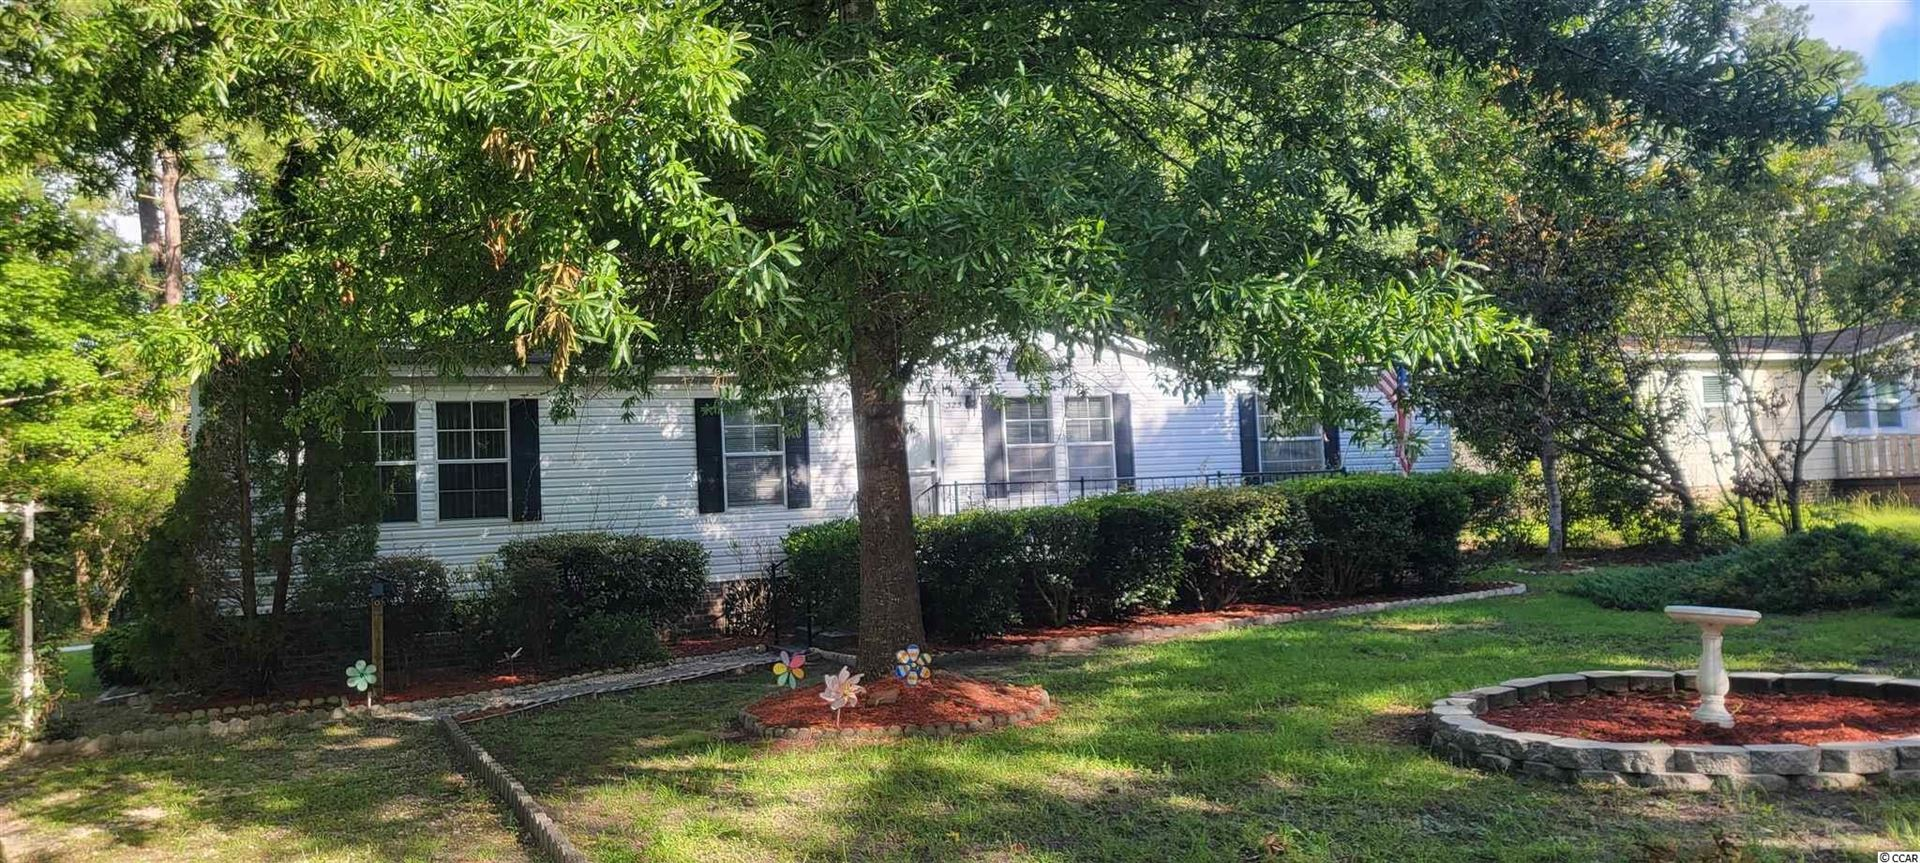 323 Maplewood Dr. NW, Calabash, NC, 28467, Ocean Forest|Brunswick County Home For Sale